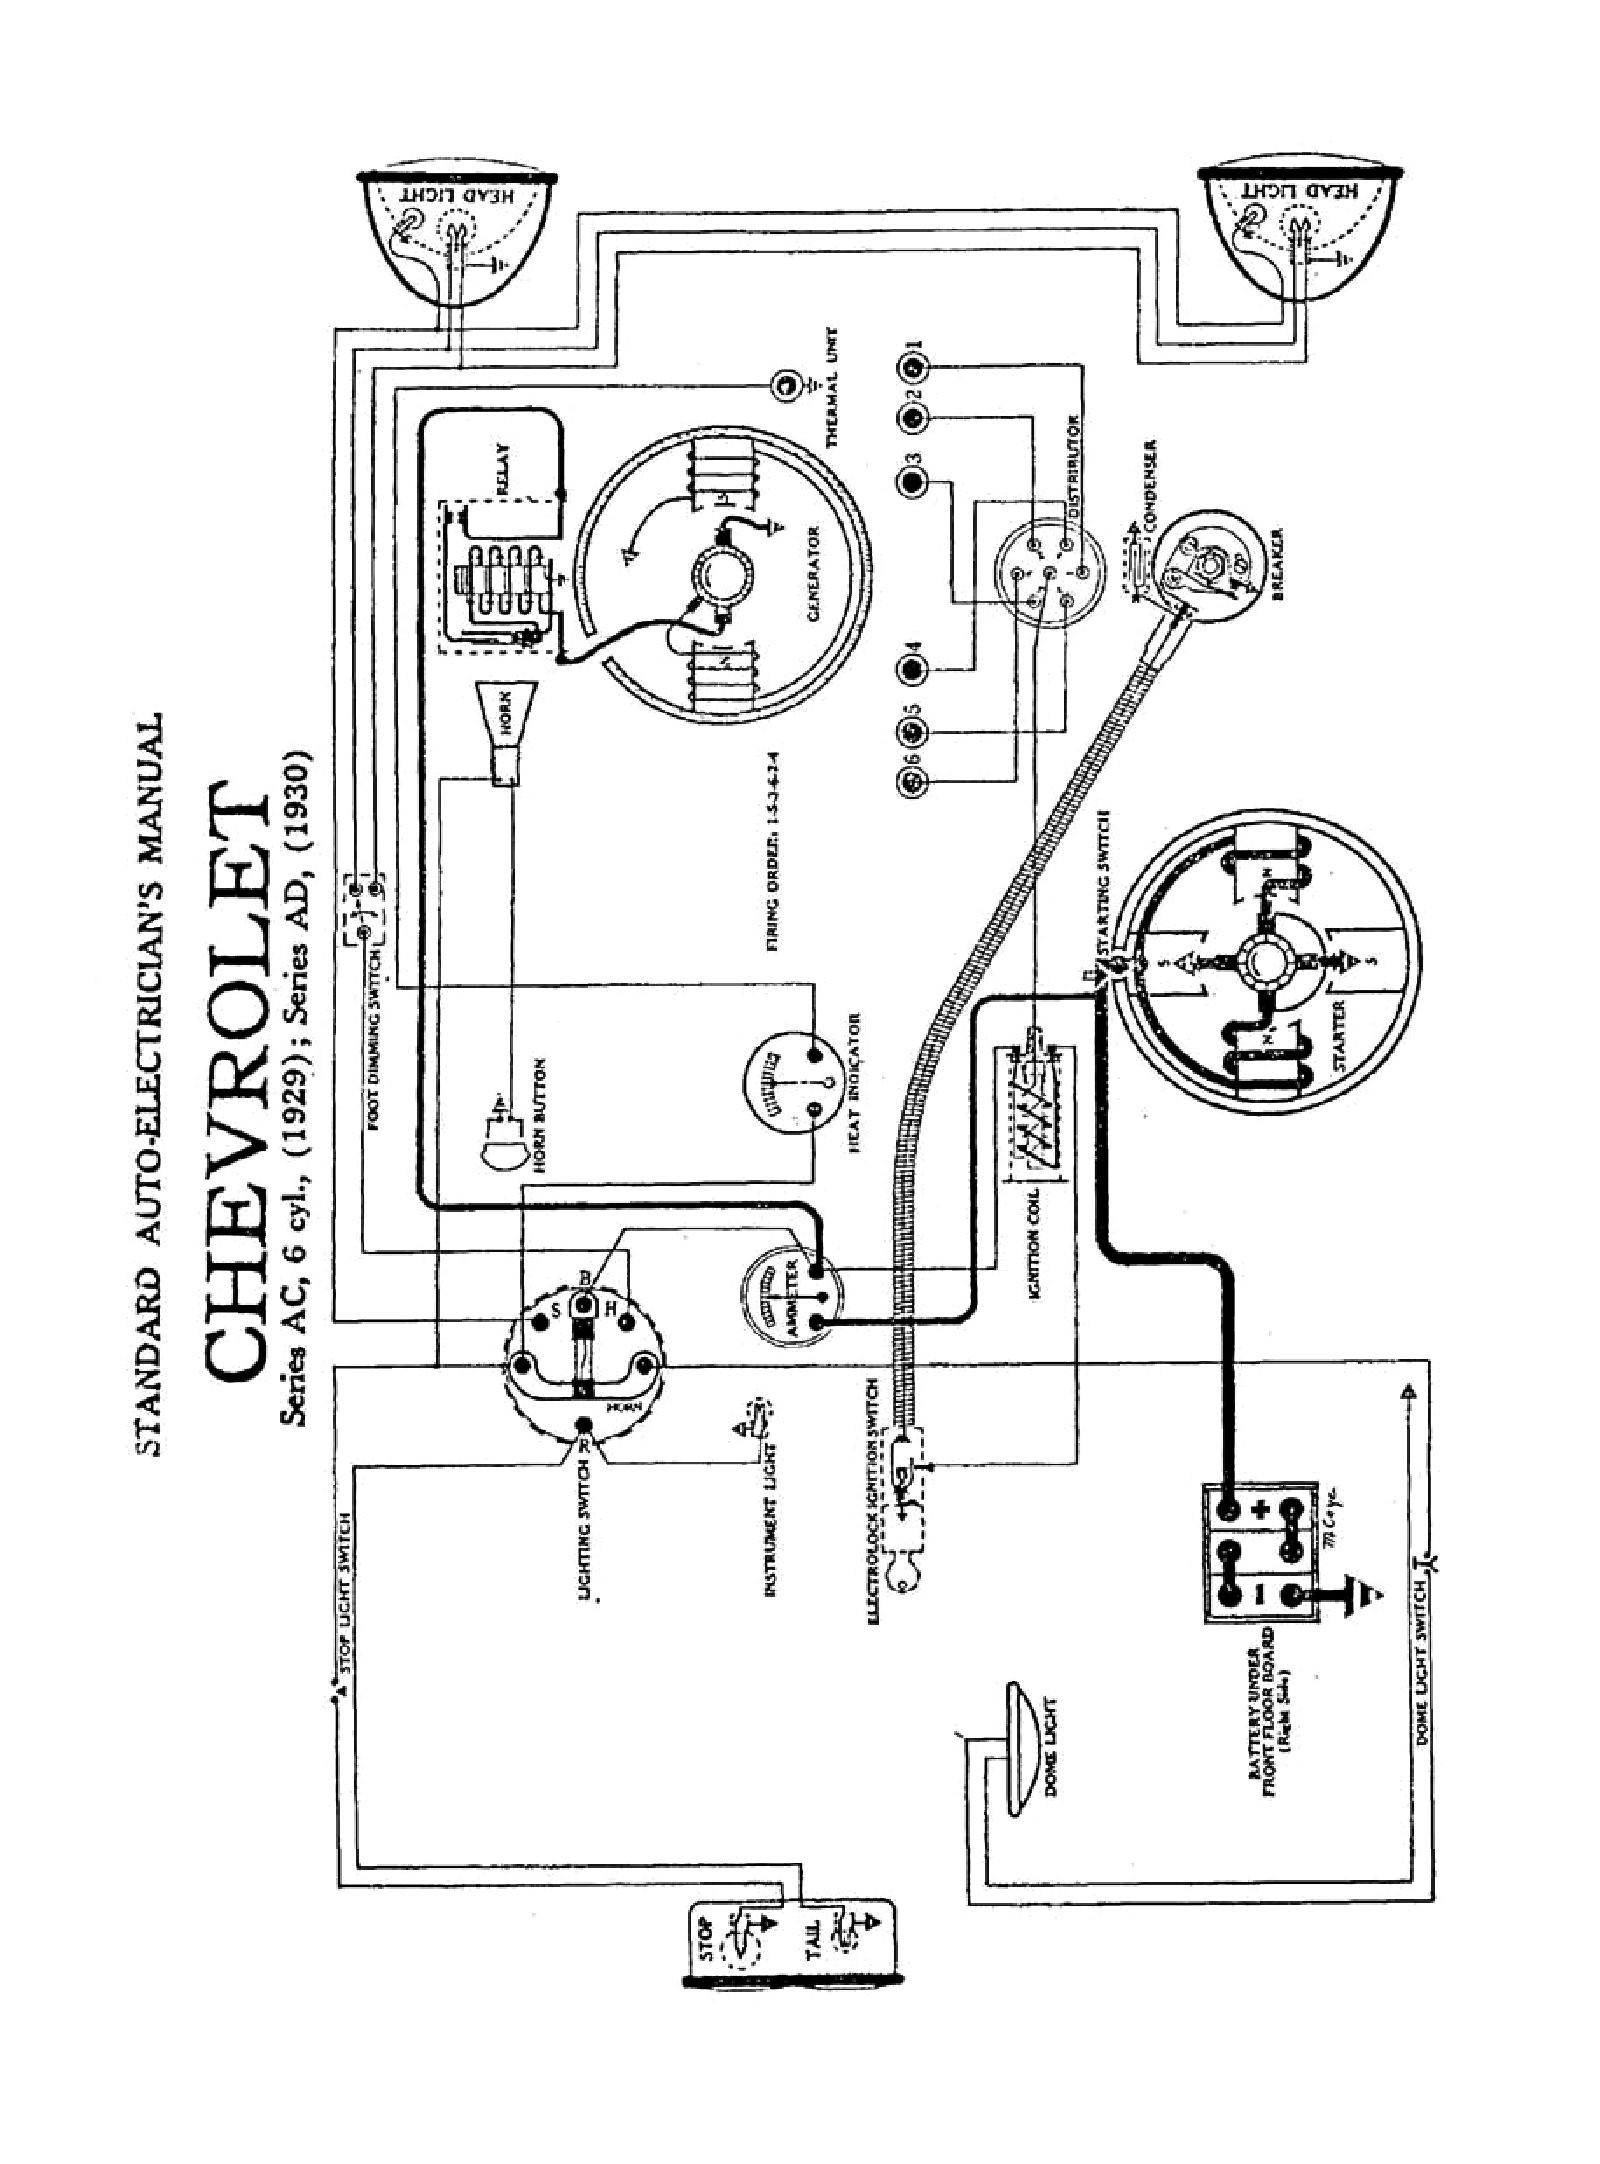 How To Wire Ammeter Elegant Wiring Diagram Image